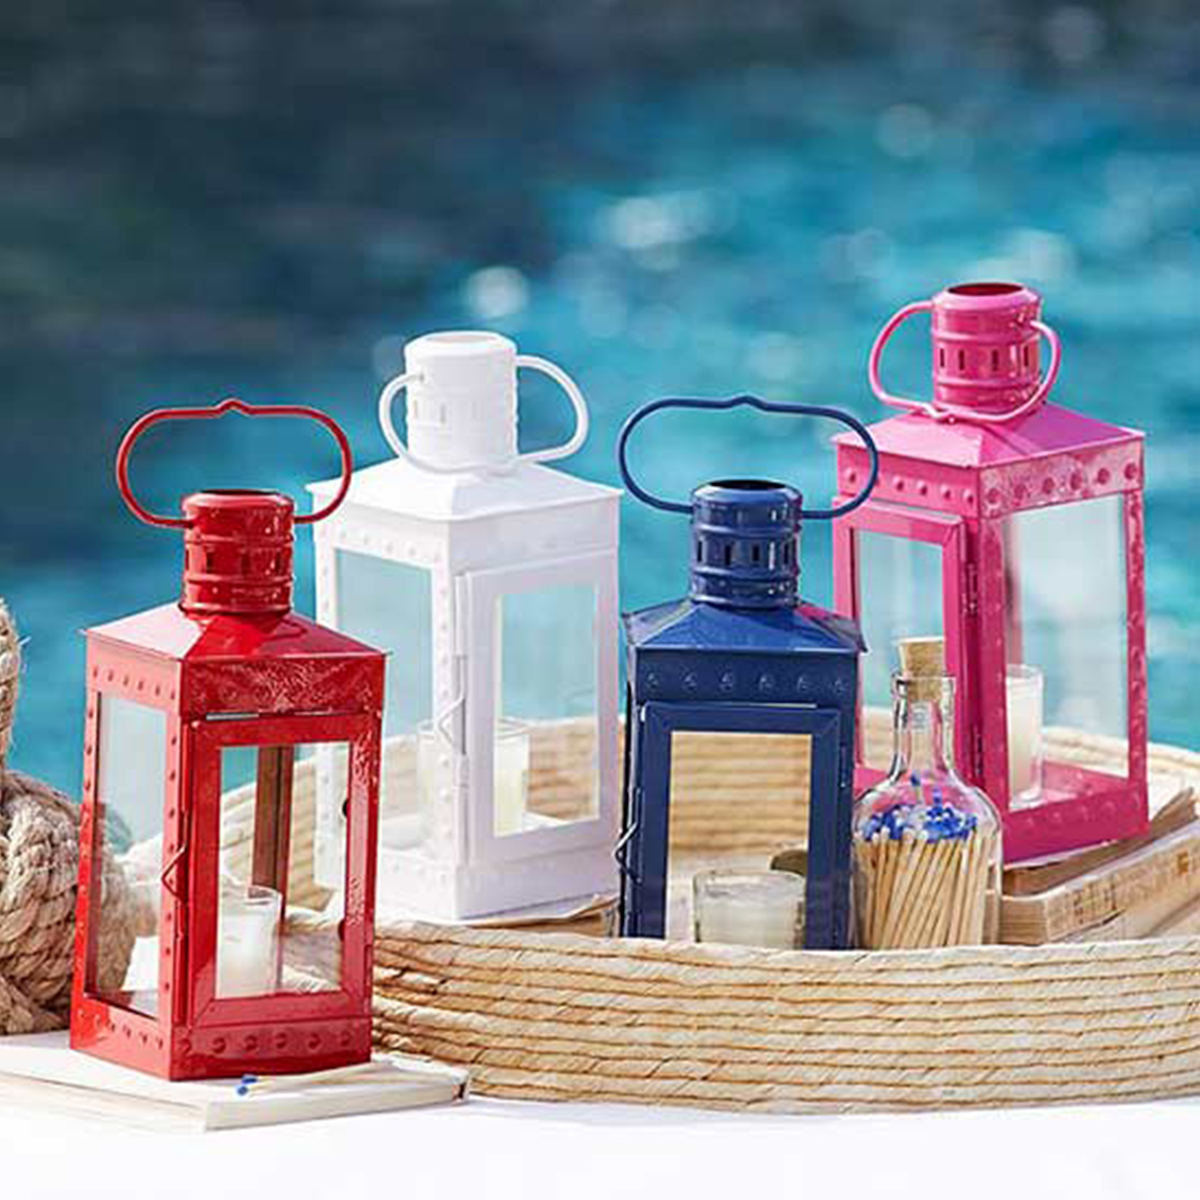 Pottery Barn lanters in bink, blue, red, and white photo